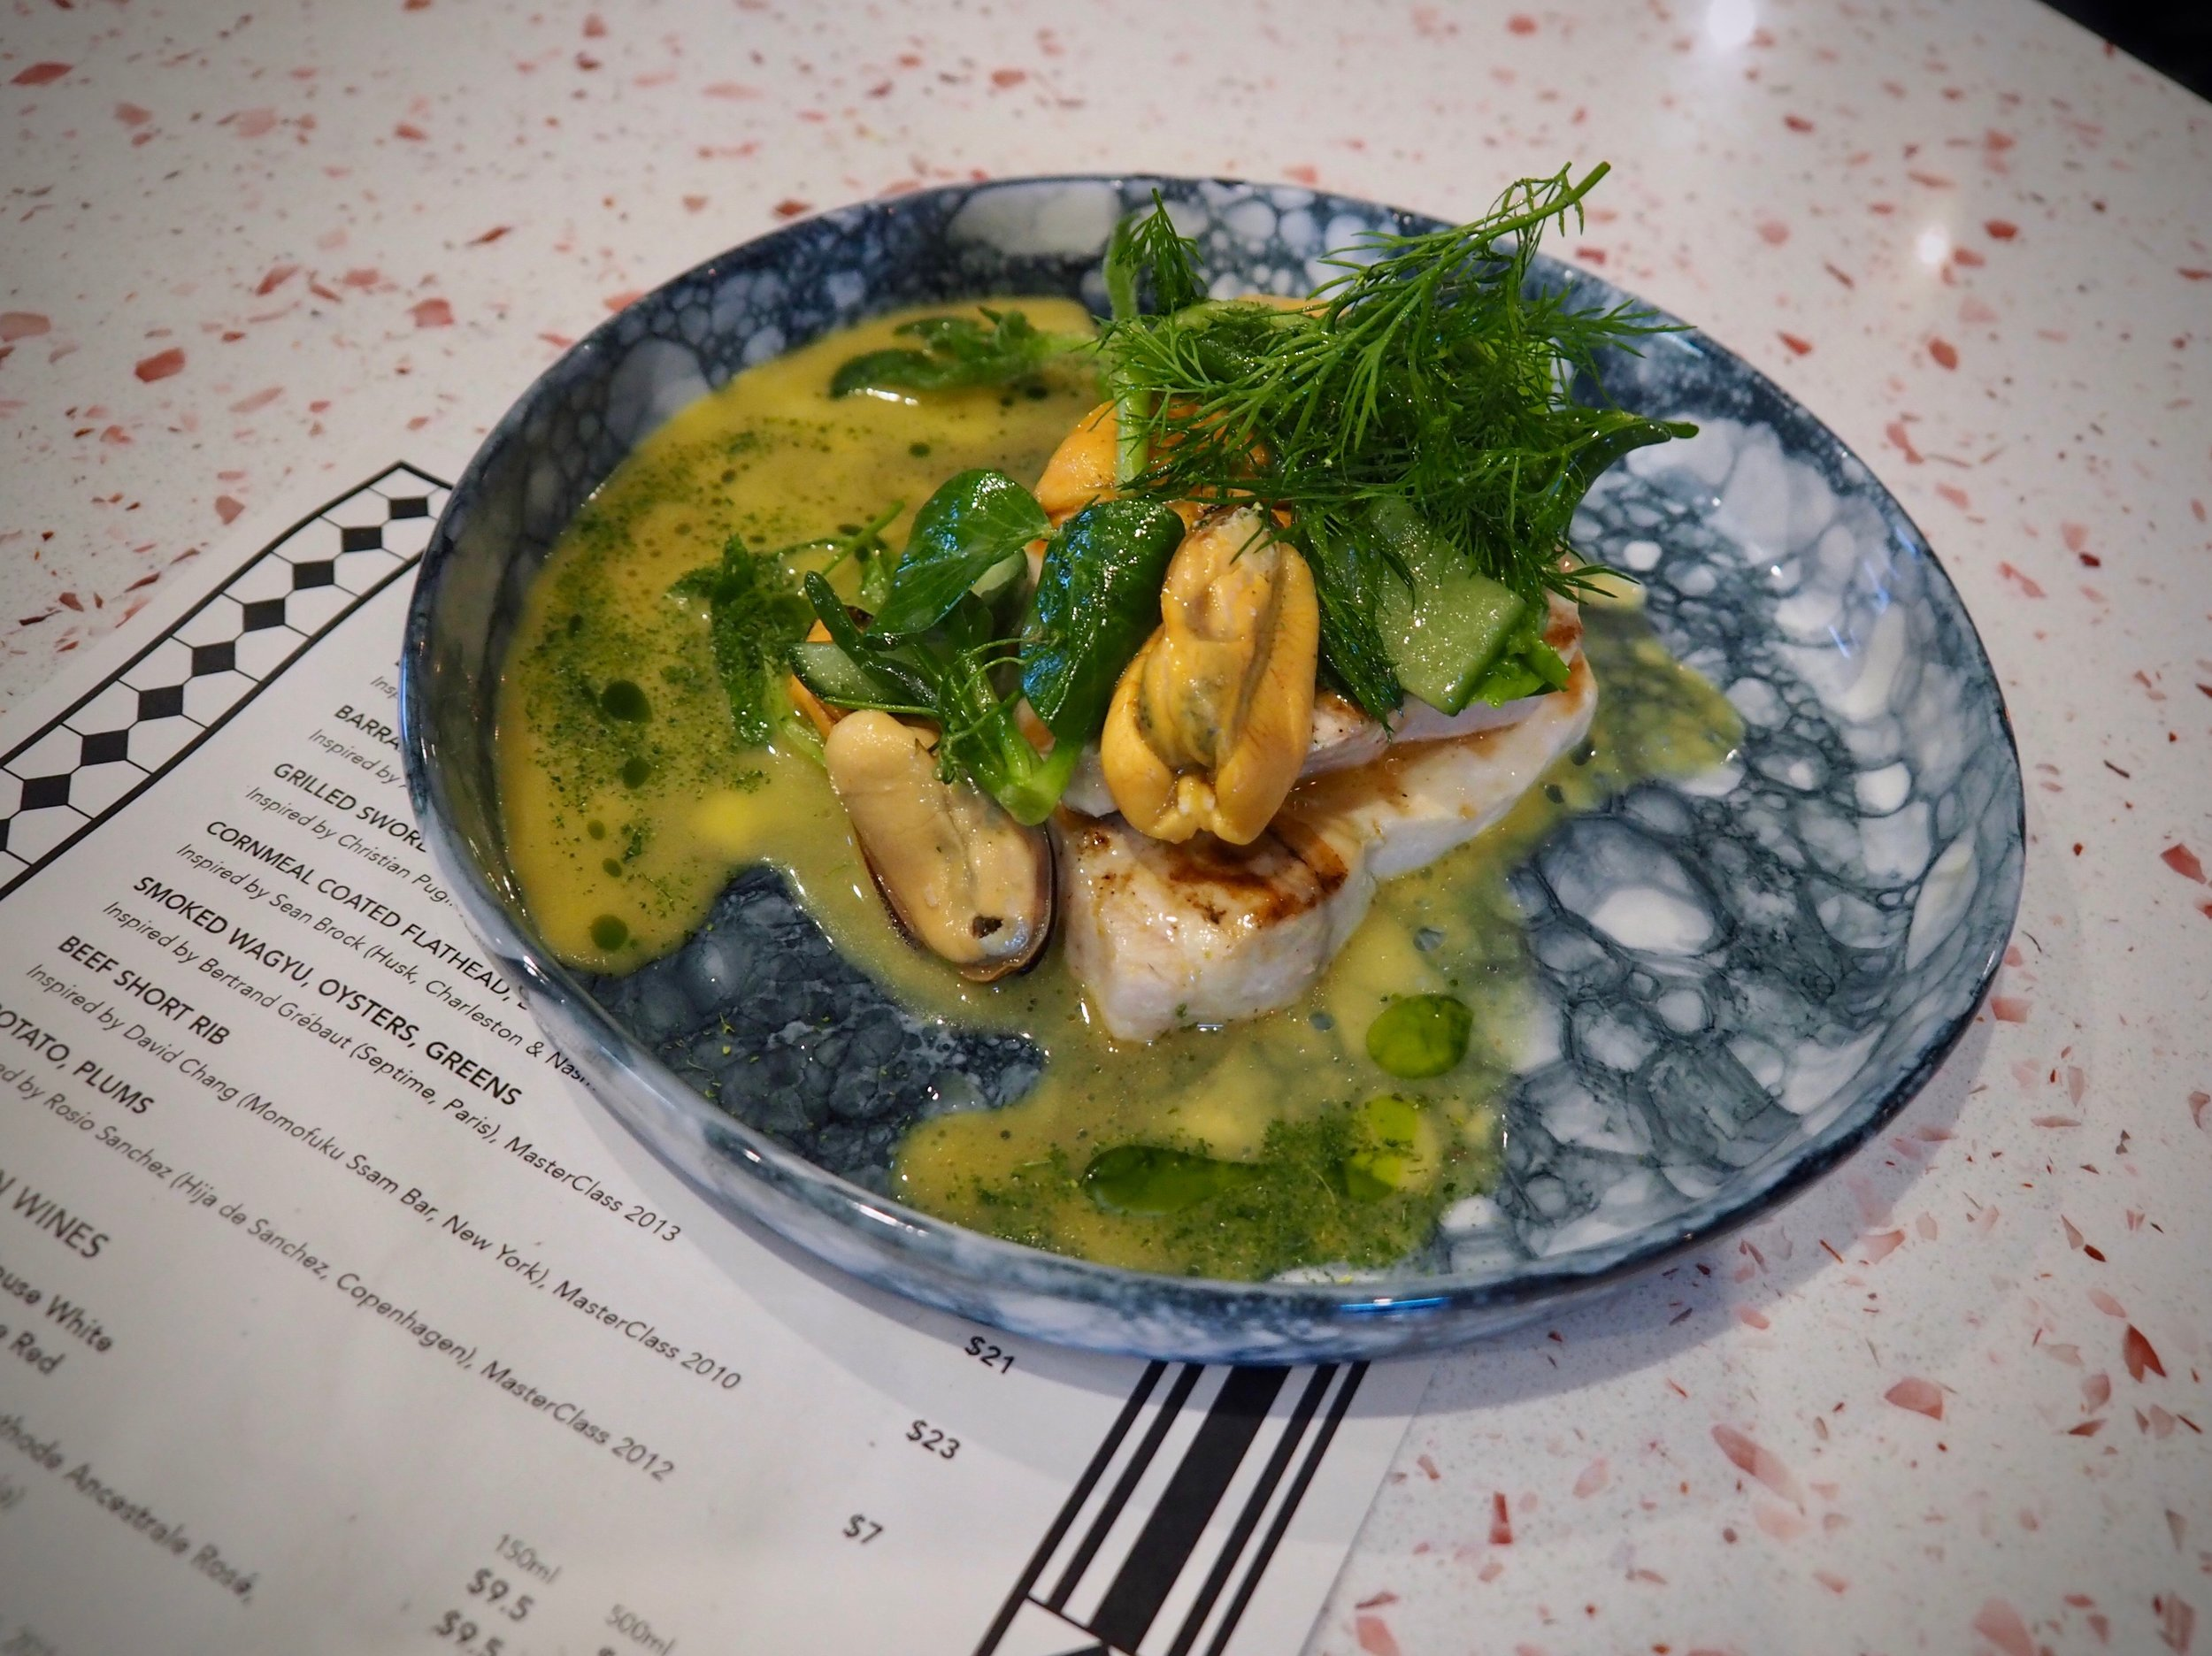 Grilled Swordfish, Parsley, Mussels - inspired by Christian Puglisi (Relæ, Cophenhagen), MasterClass 2012